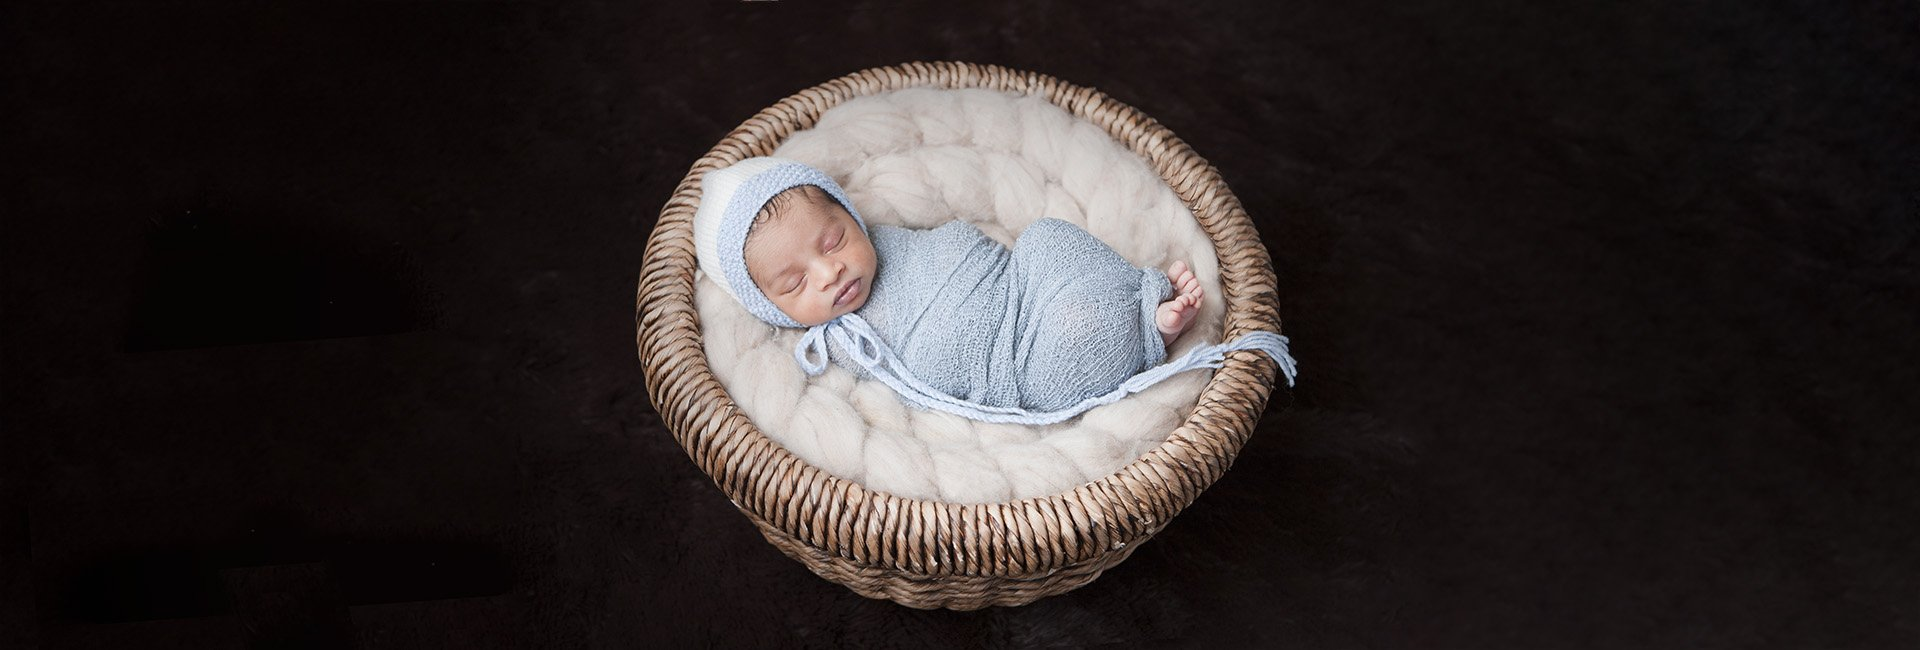 Newborn-Little-Boy-Photographer-Melbourne